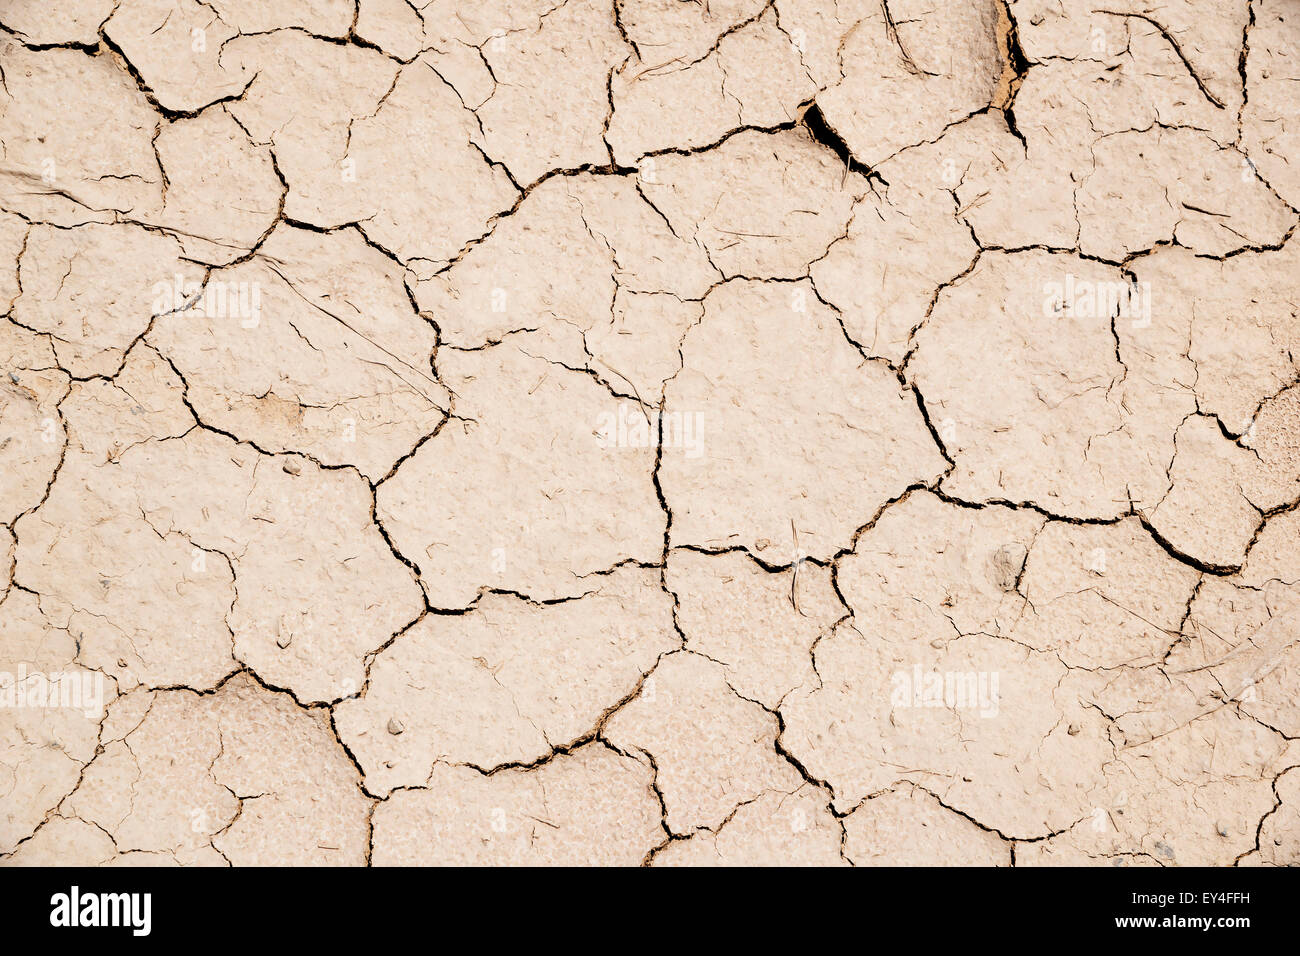 Image parched earth in middle east Oman for abstract background texture - Stock Image